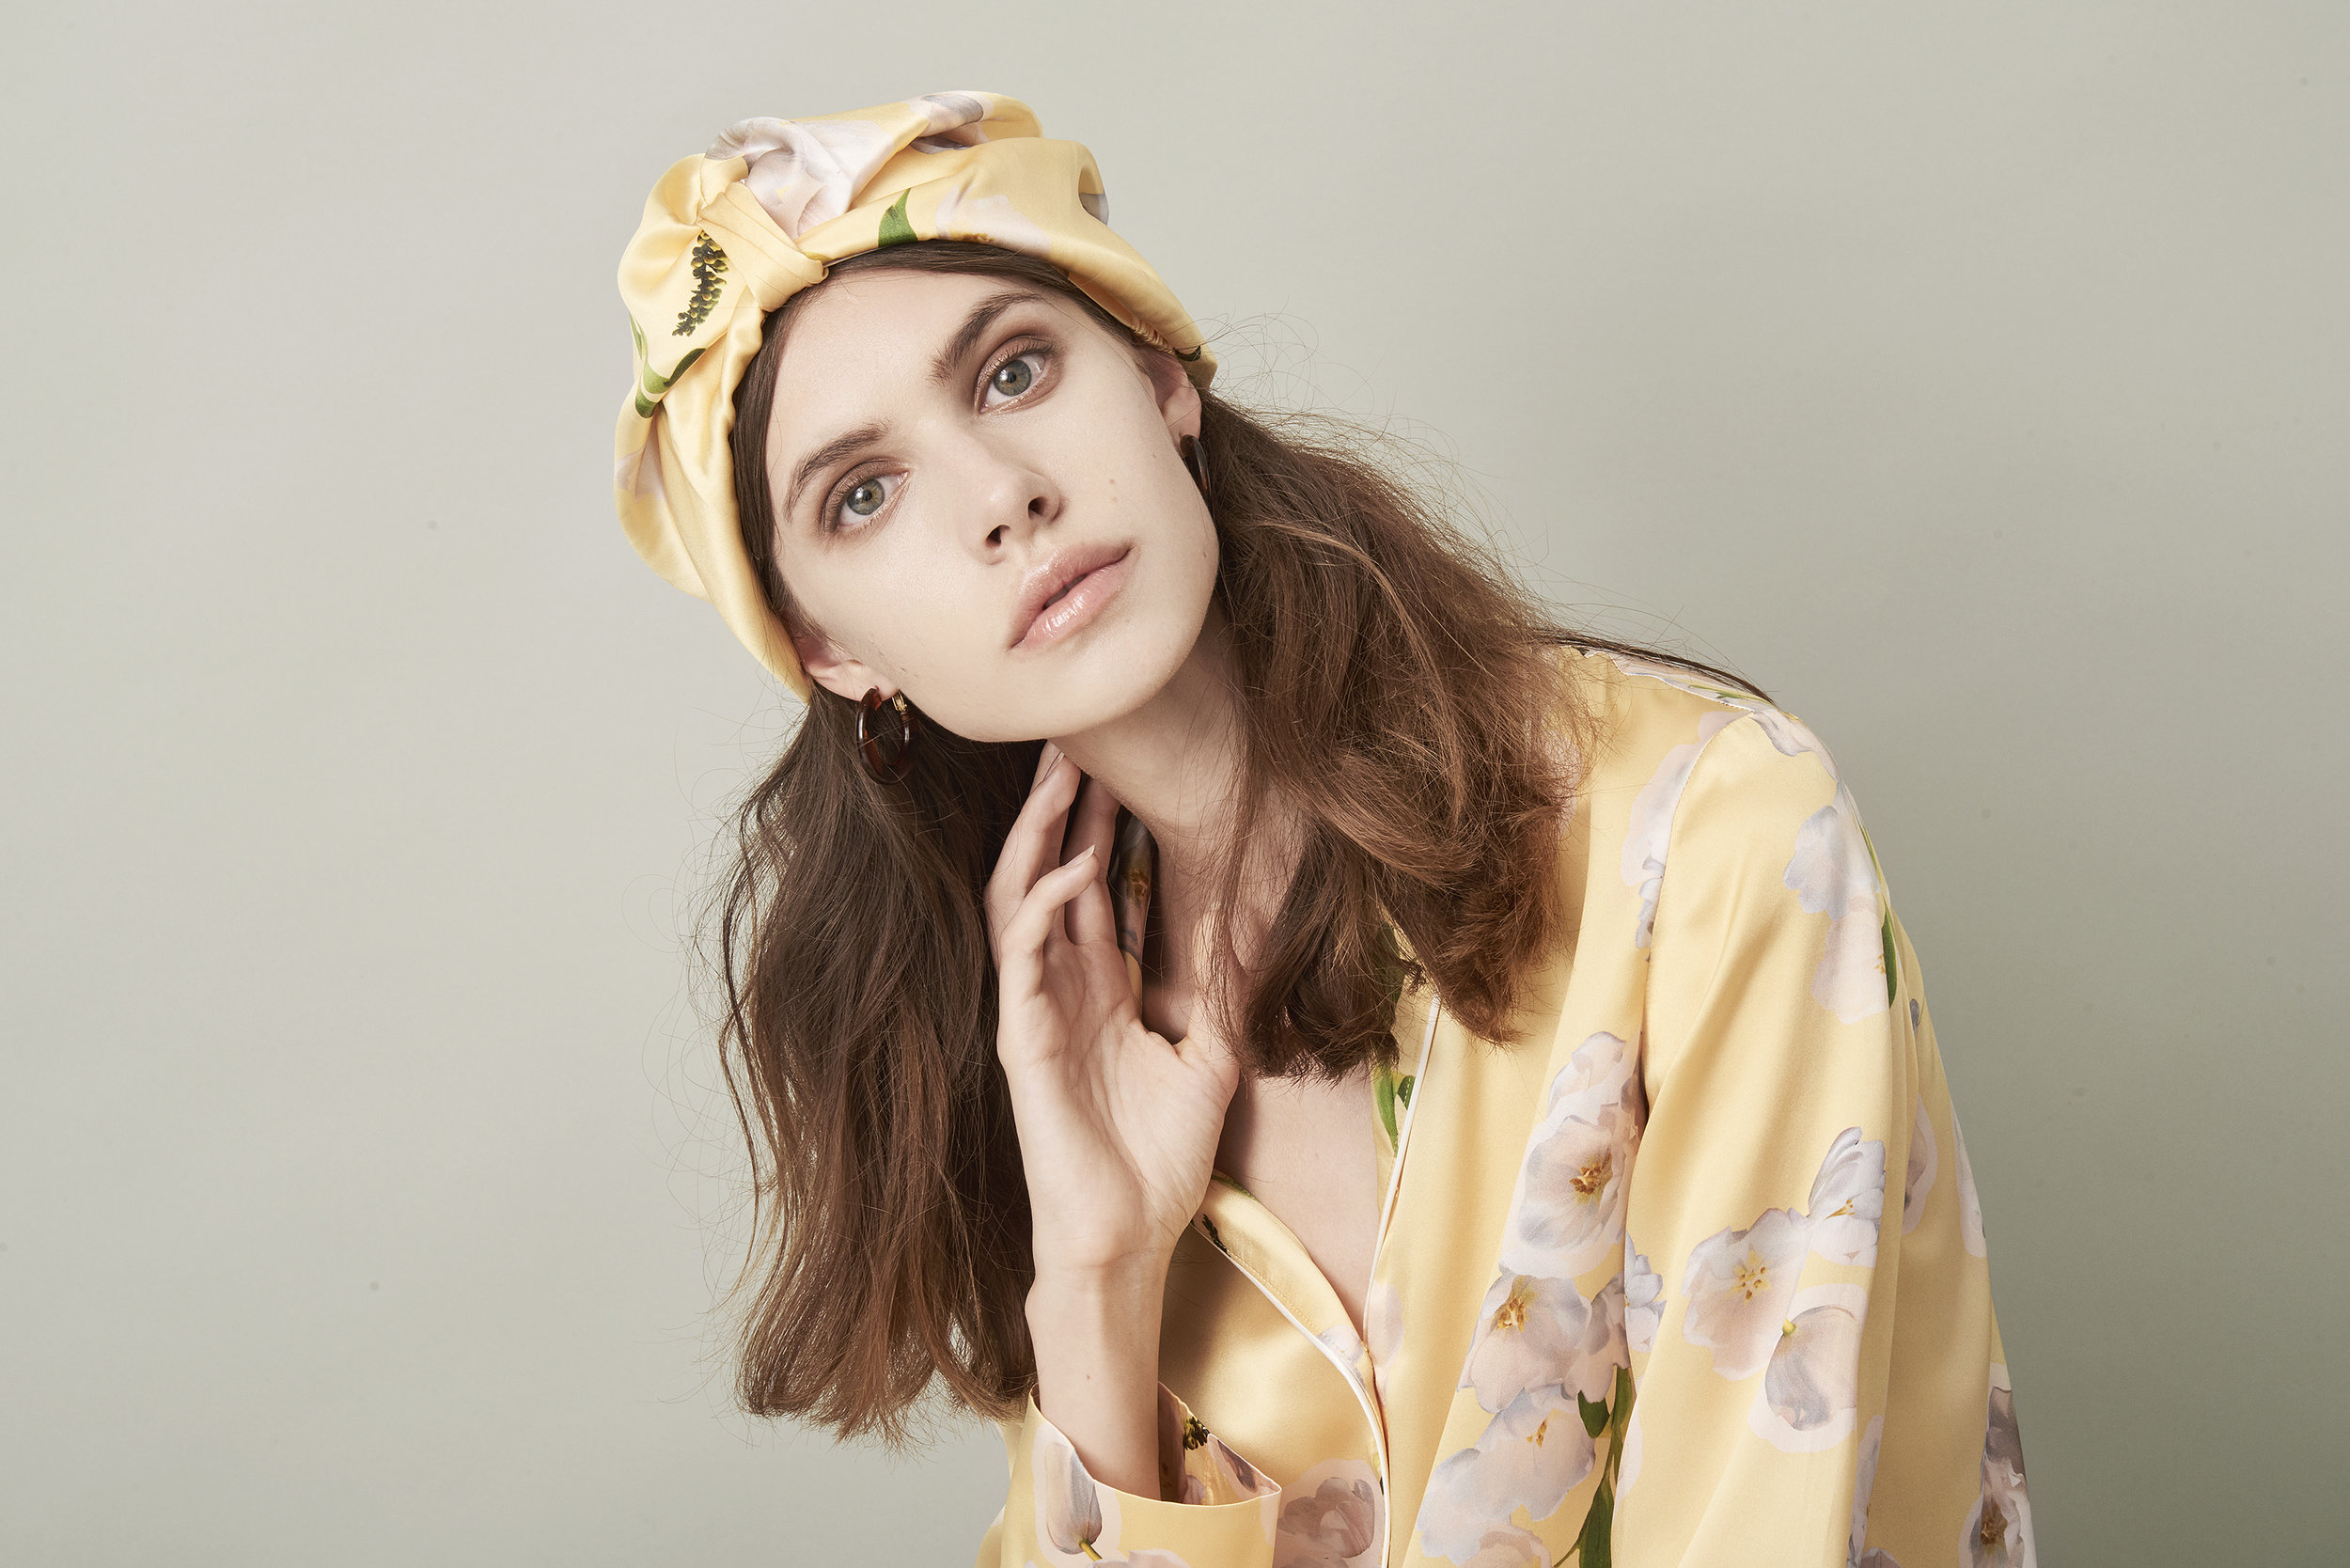 Violet & Wren Vita Collection Sundrenched Tulip Pyjama Shirt and Turban